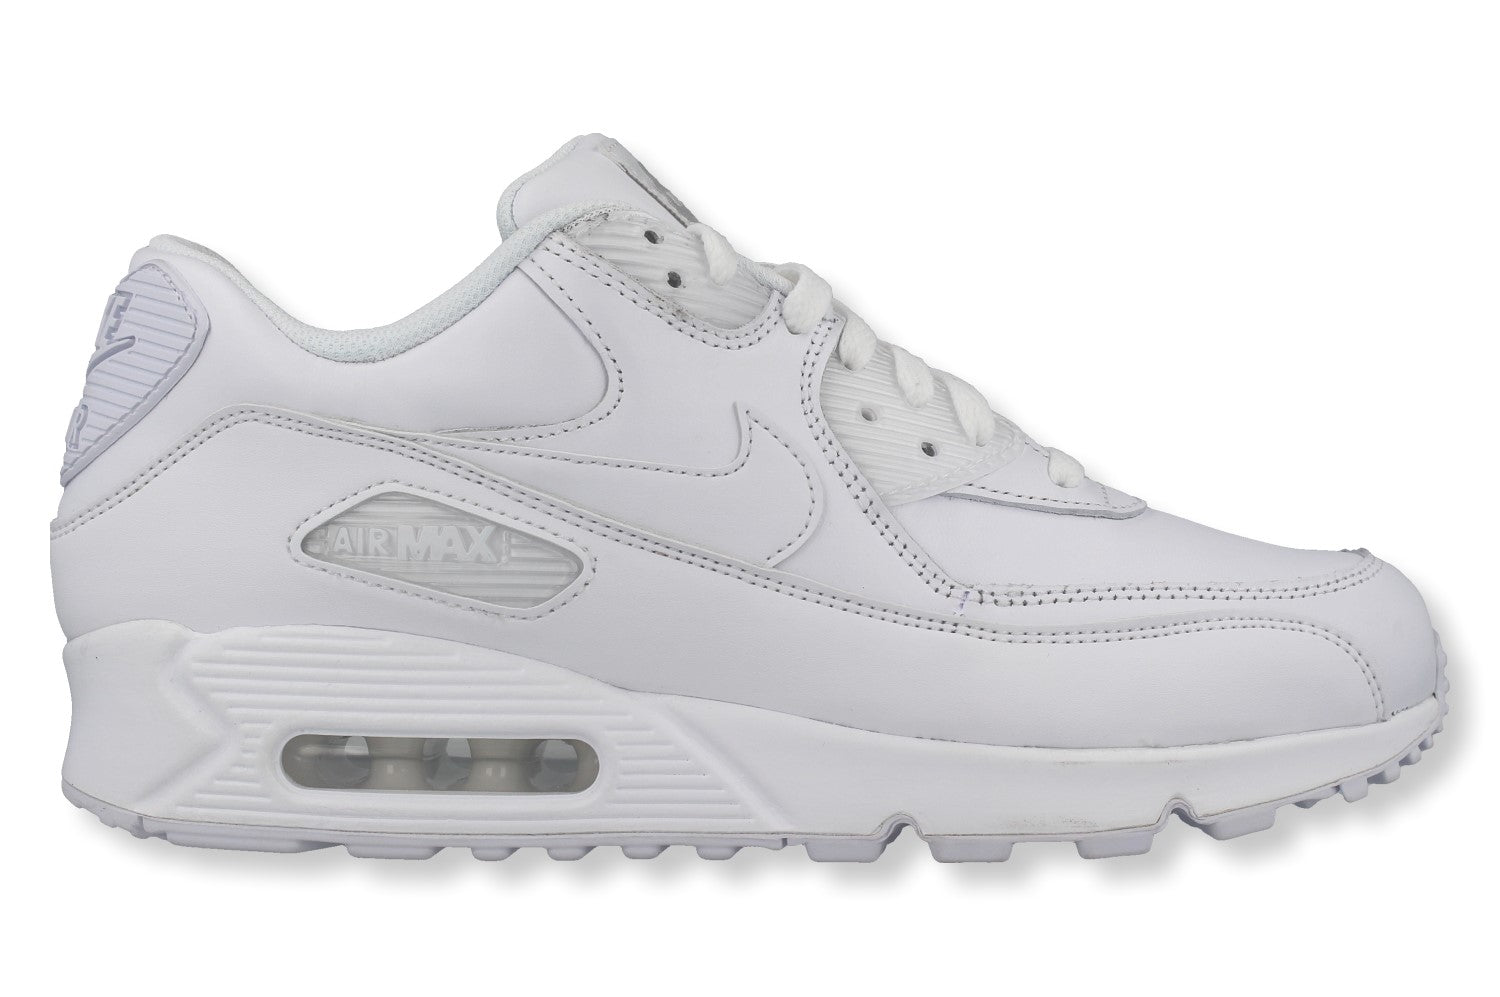 Air Max 90 Leather - Schrittmacher Shop